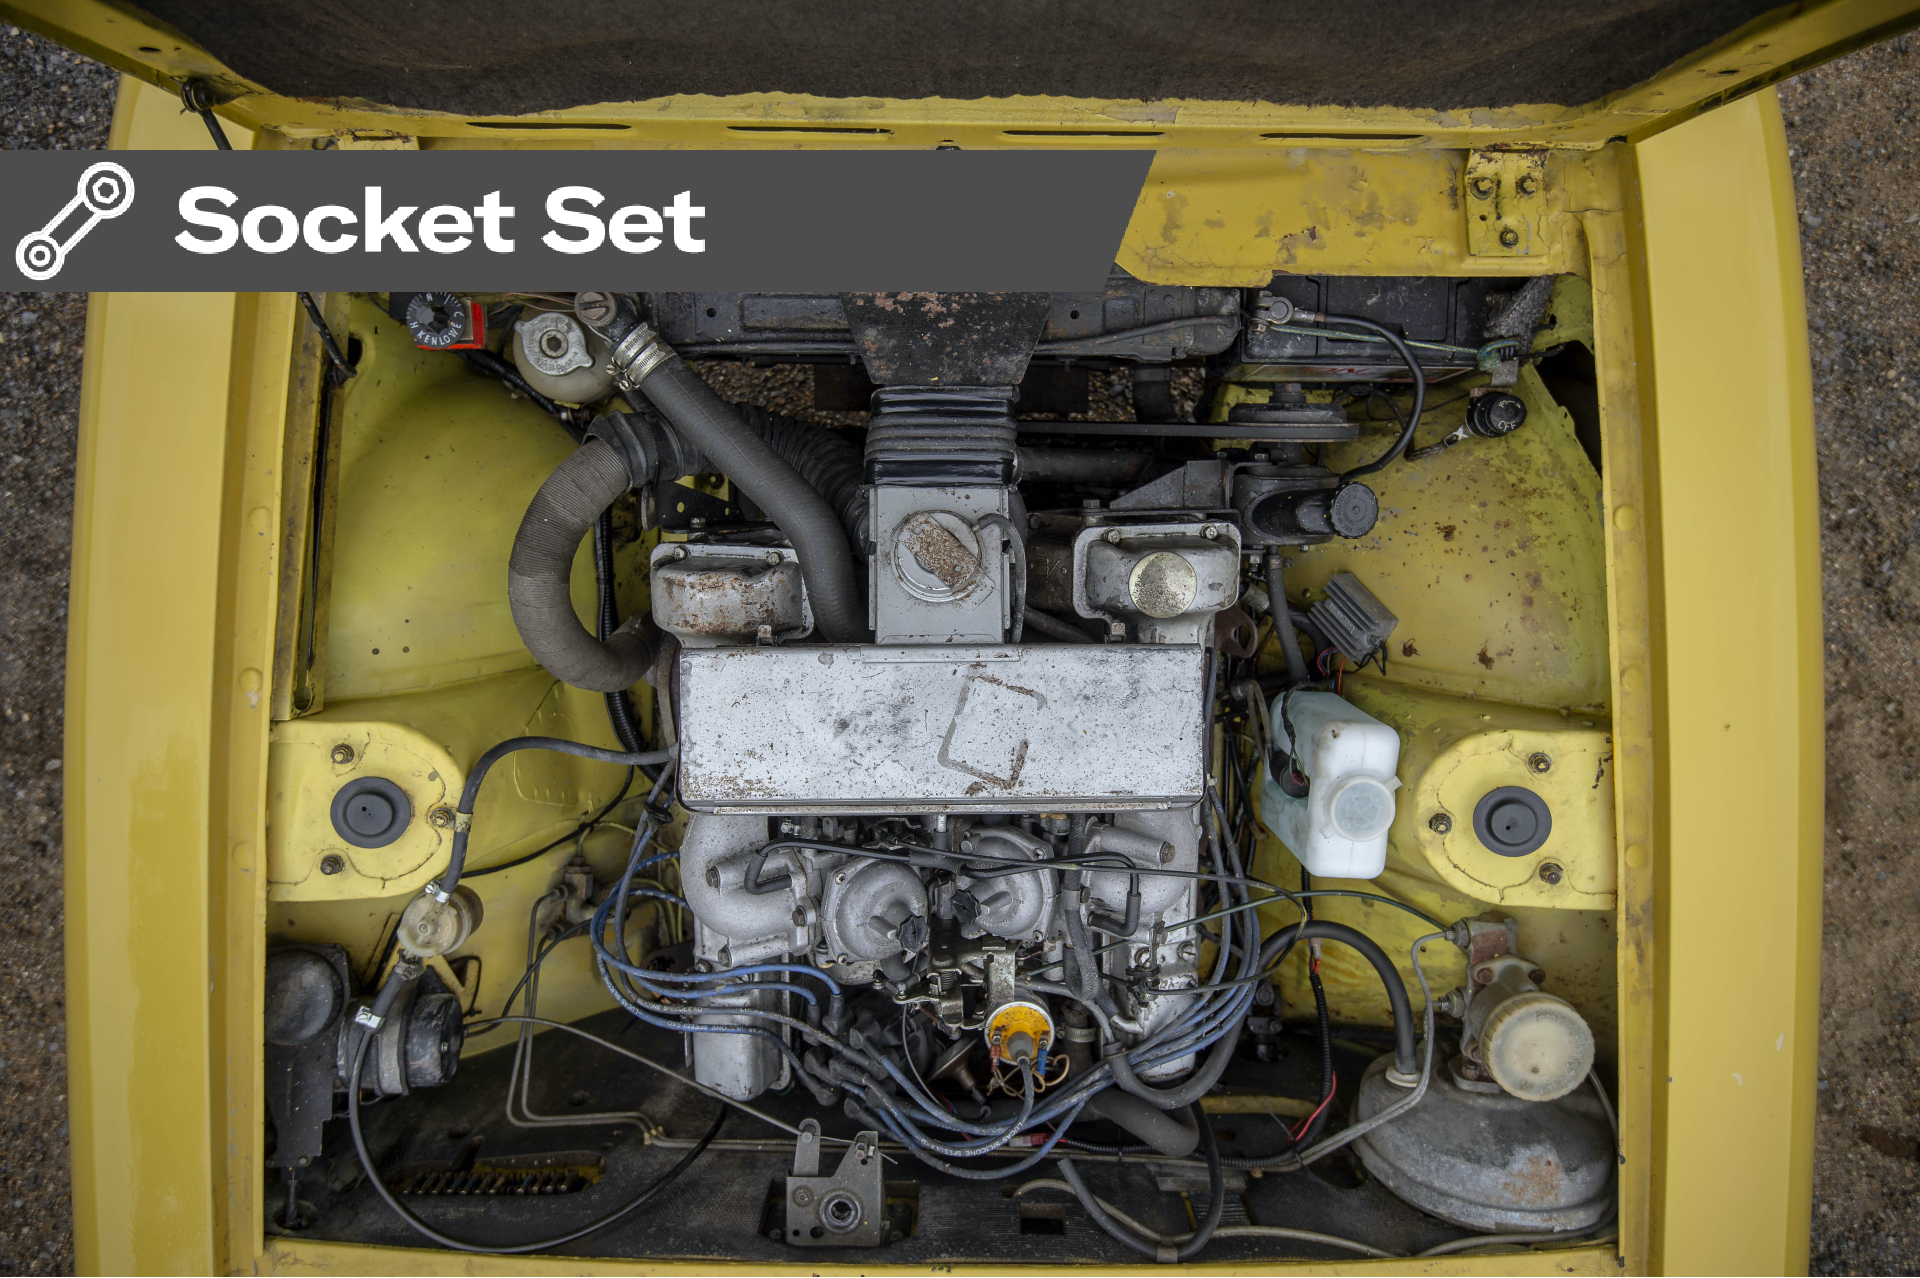 Socket Set: Maintaining your car's ignition system